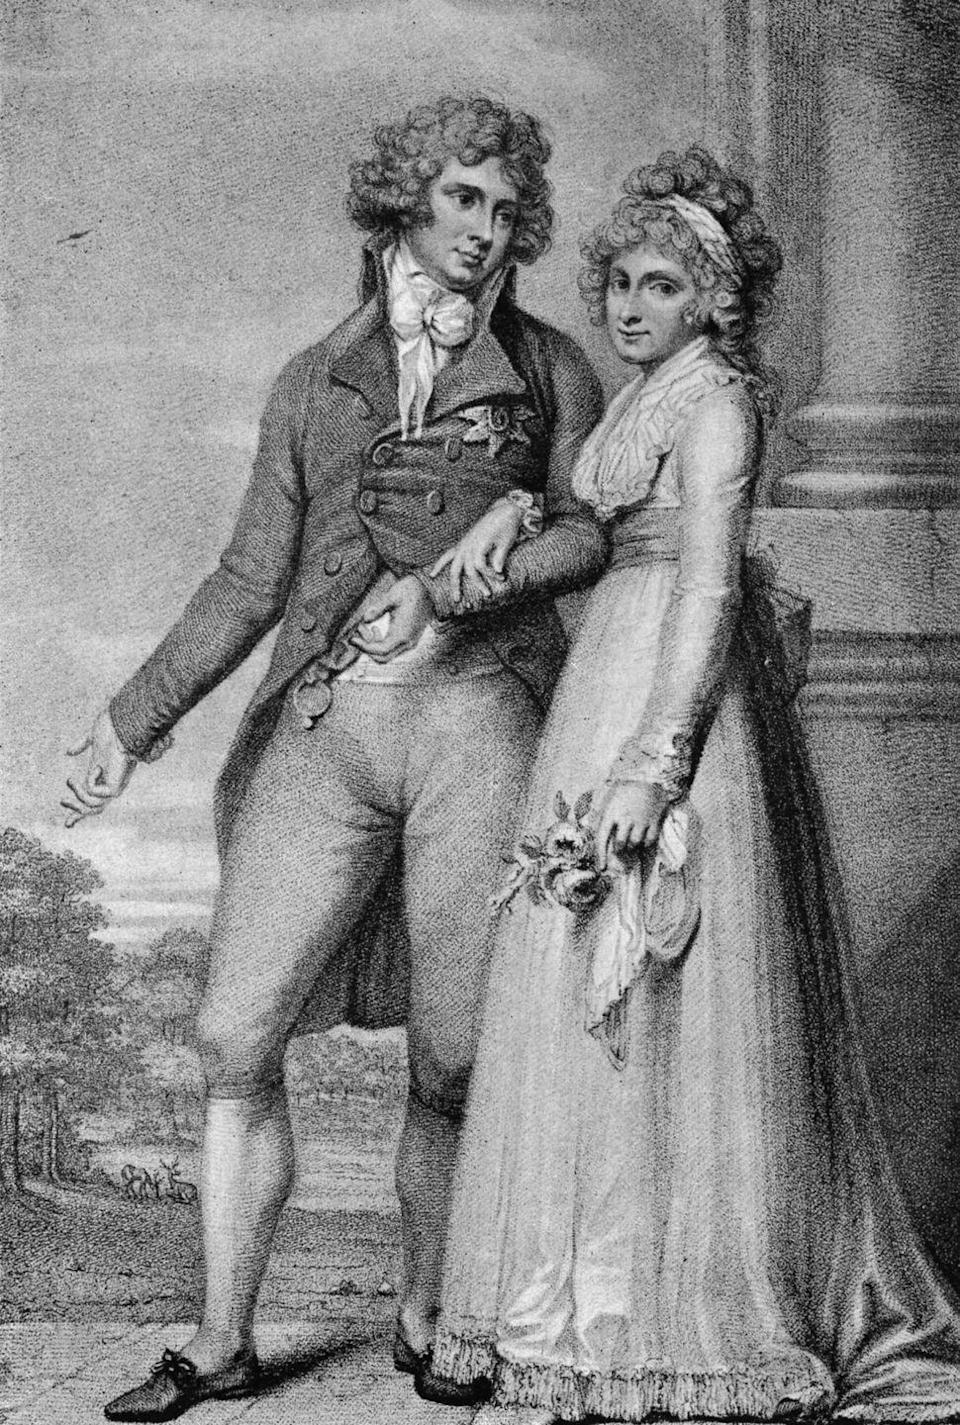 """<p>George IV appears to have had quite the scandalous life. According to the <a href=""""http://news.bbc.co.uk/1/hi/programmes/monarchy/2015428.stm"""" rel=""""nofollow noopener"""" target=""""_blank"""" data-ylk=""""slk:BBC"""" class=""""link rapid-noclick-resp"""">BBC</a>, the royal """"secretly and illegally married a Catholic who he had to abandon for an approved match with his cousin Caroline of Brunswick."""" The cousins did not hit it off, and upon seeing his new bride, George IV reportedly said, """"I am not well; pray get me a glass of brandy."""" <a href=""""https://life.spectator.co.uk/articles/a-curious-history-of-royal-weddings/"""" rel=""""nofollow noopener"""" target=""""_blank"""" data-ylk=""""slk:Spectator Life"""" class=""""link rapid-noclick-resp""""><em>Spectator Life</em></a> reported that Caroline gave as good as she got and called her new husband, """"nothing like as handsome as his portrait.""""</p>"""